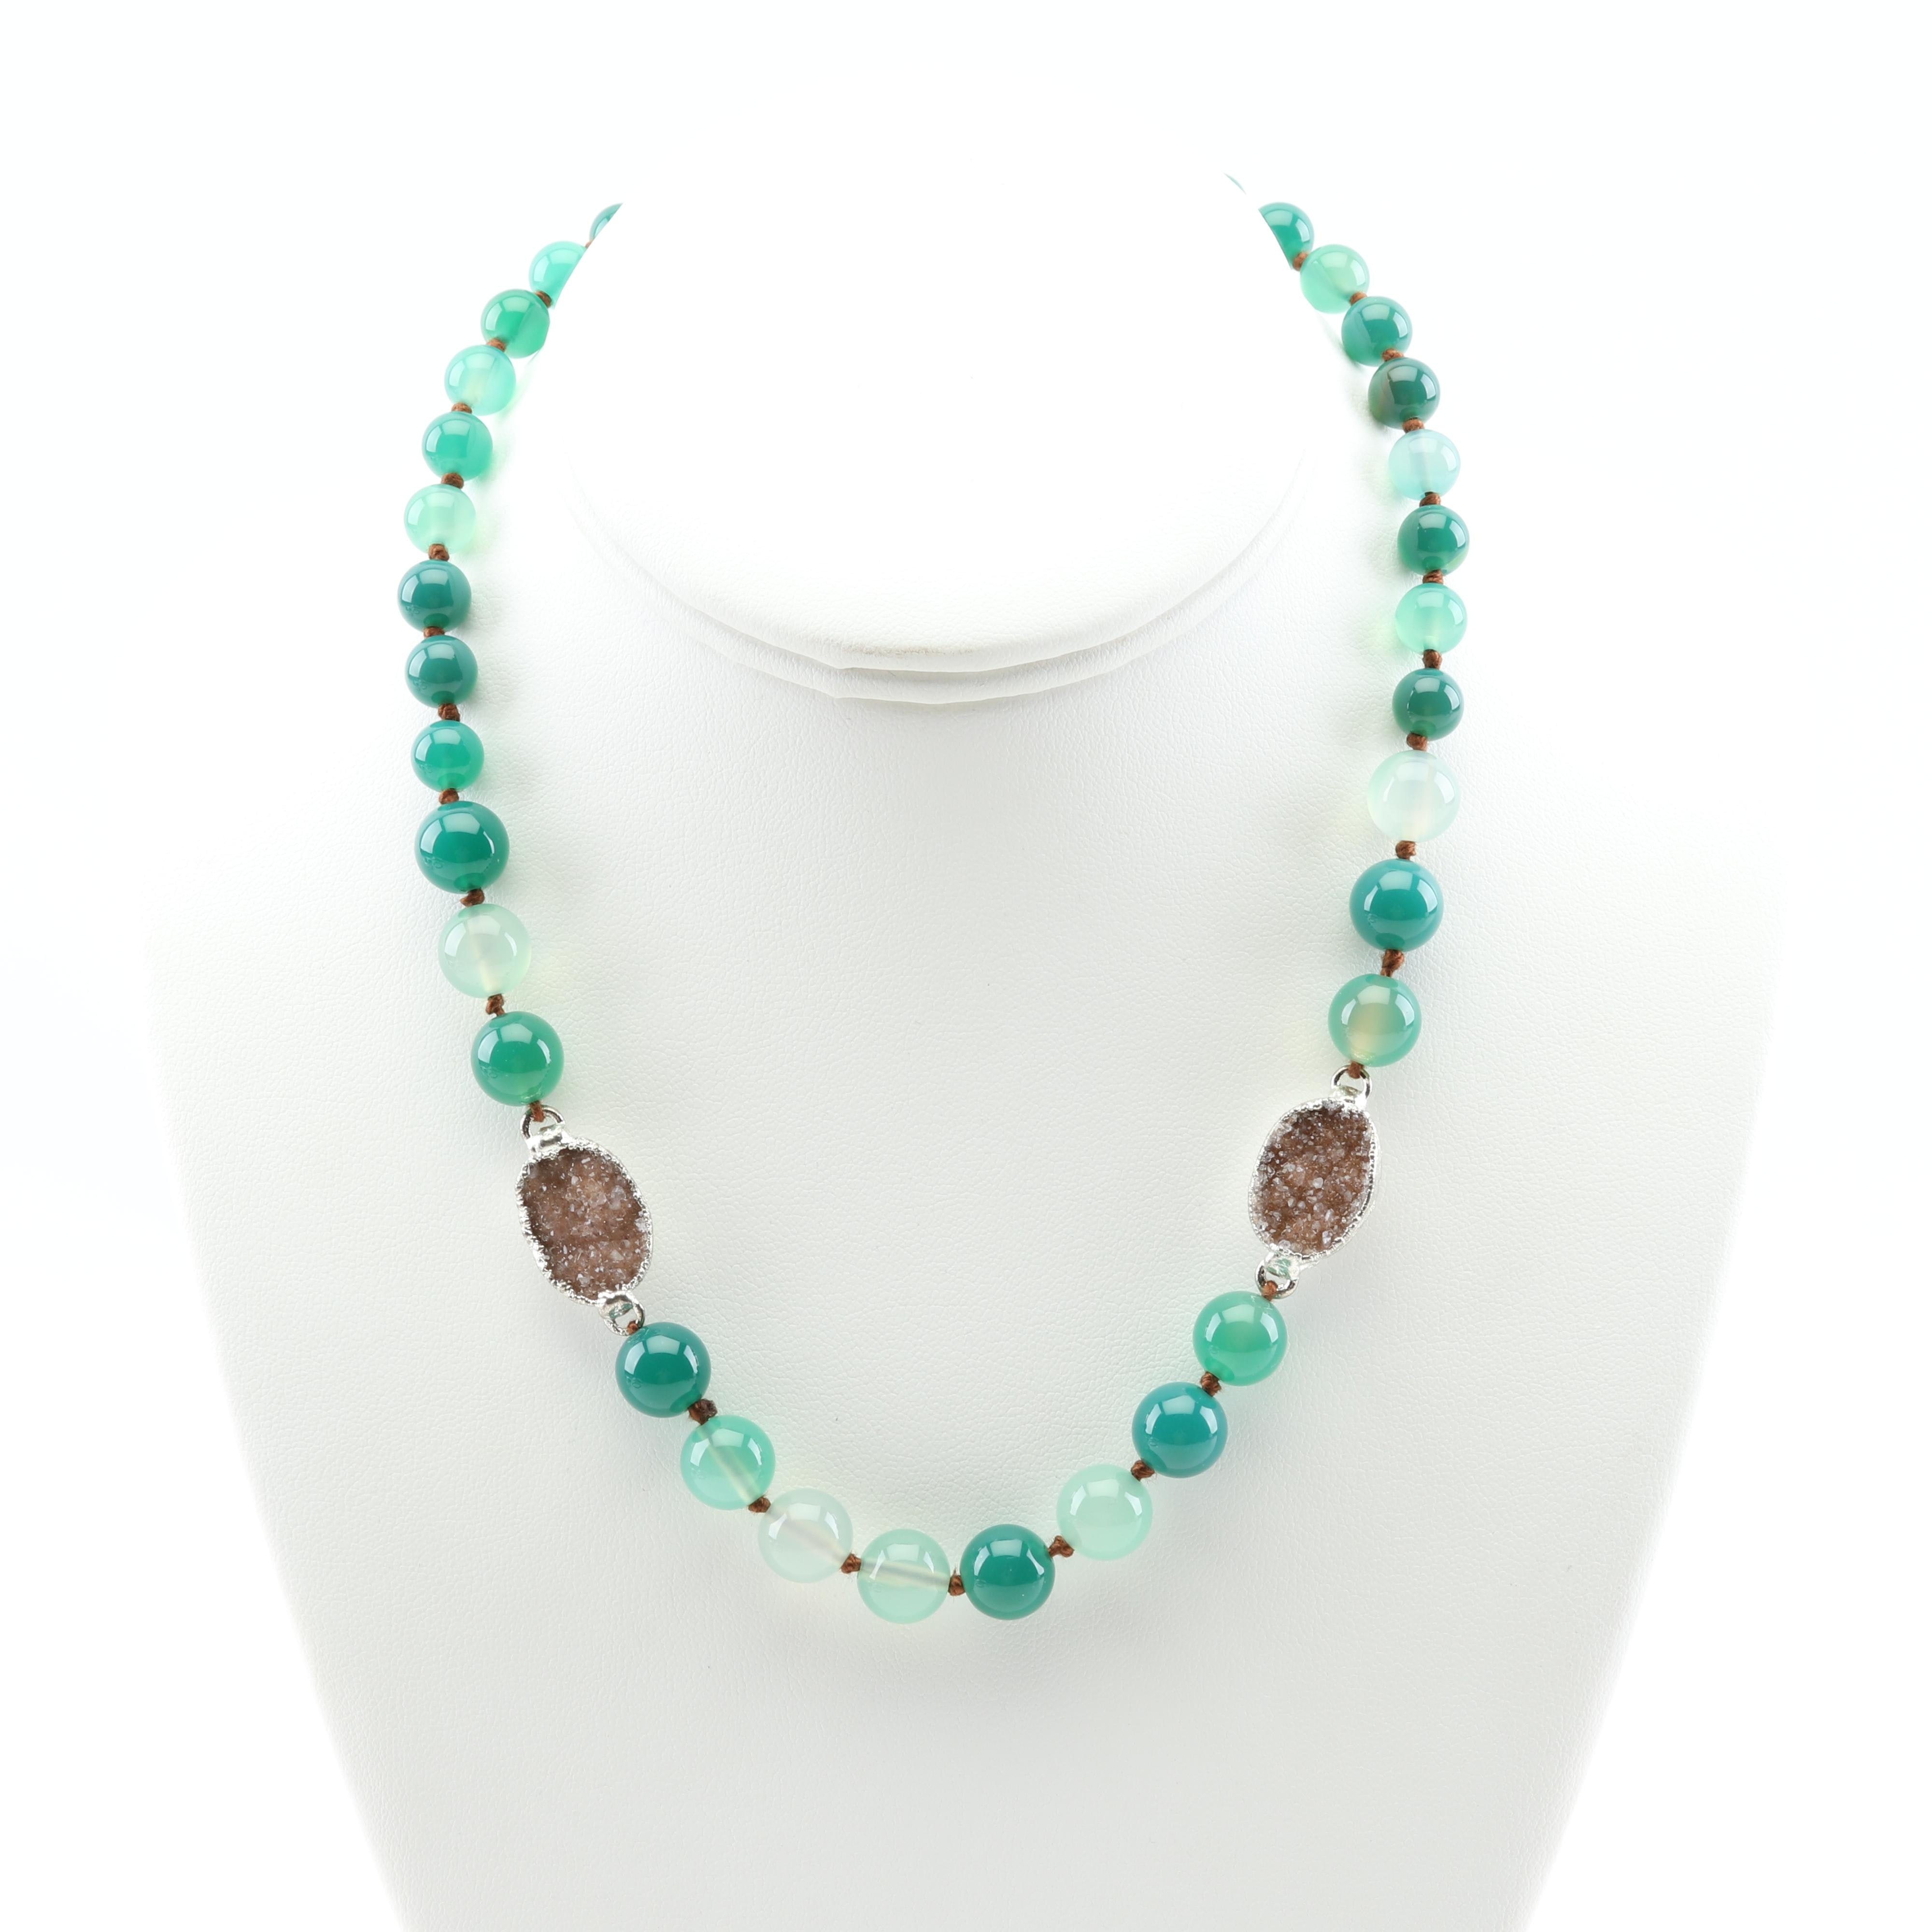 Nina Nguyen Sterling Silver Green Agate and Druzy Necklace